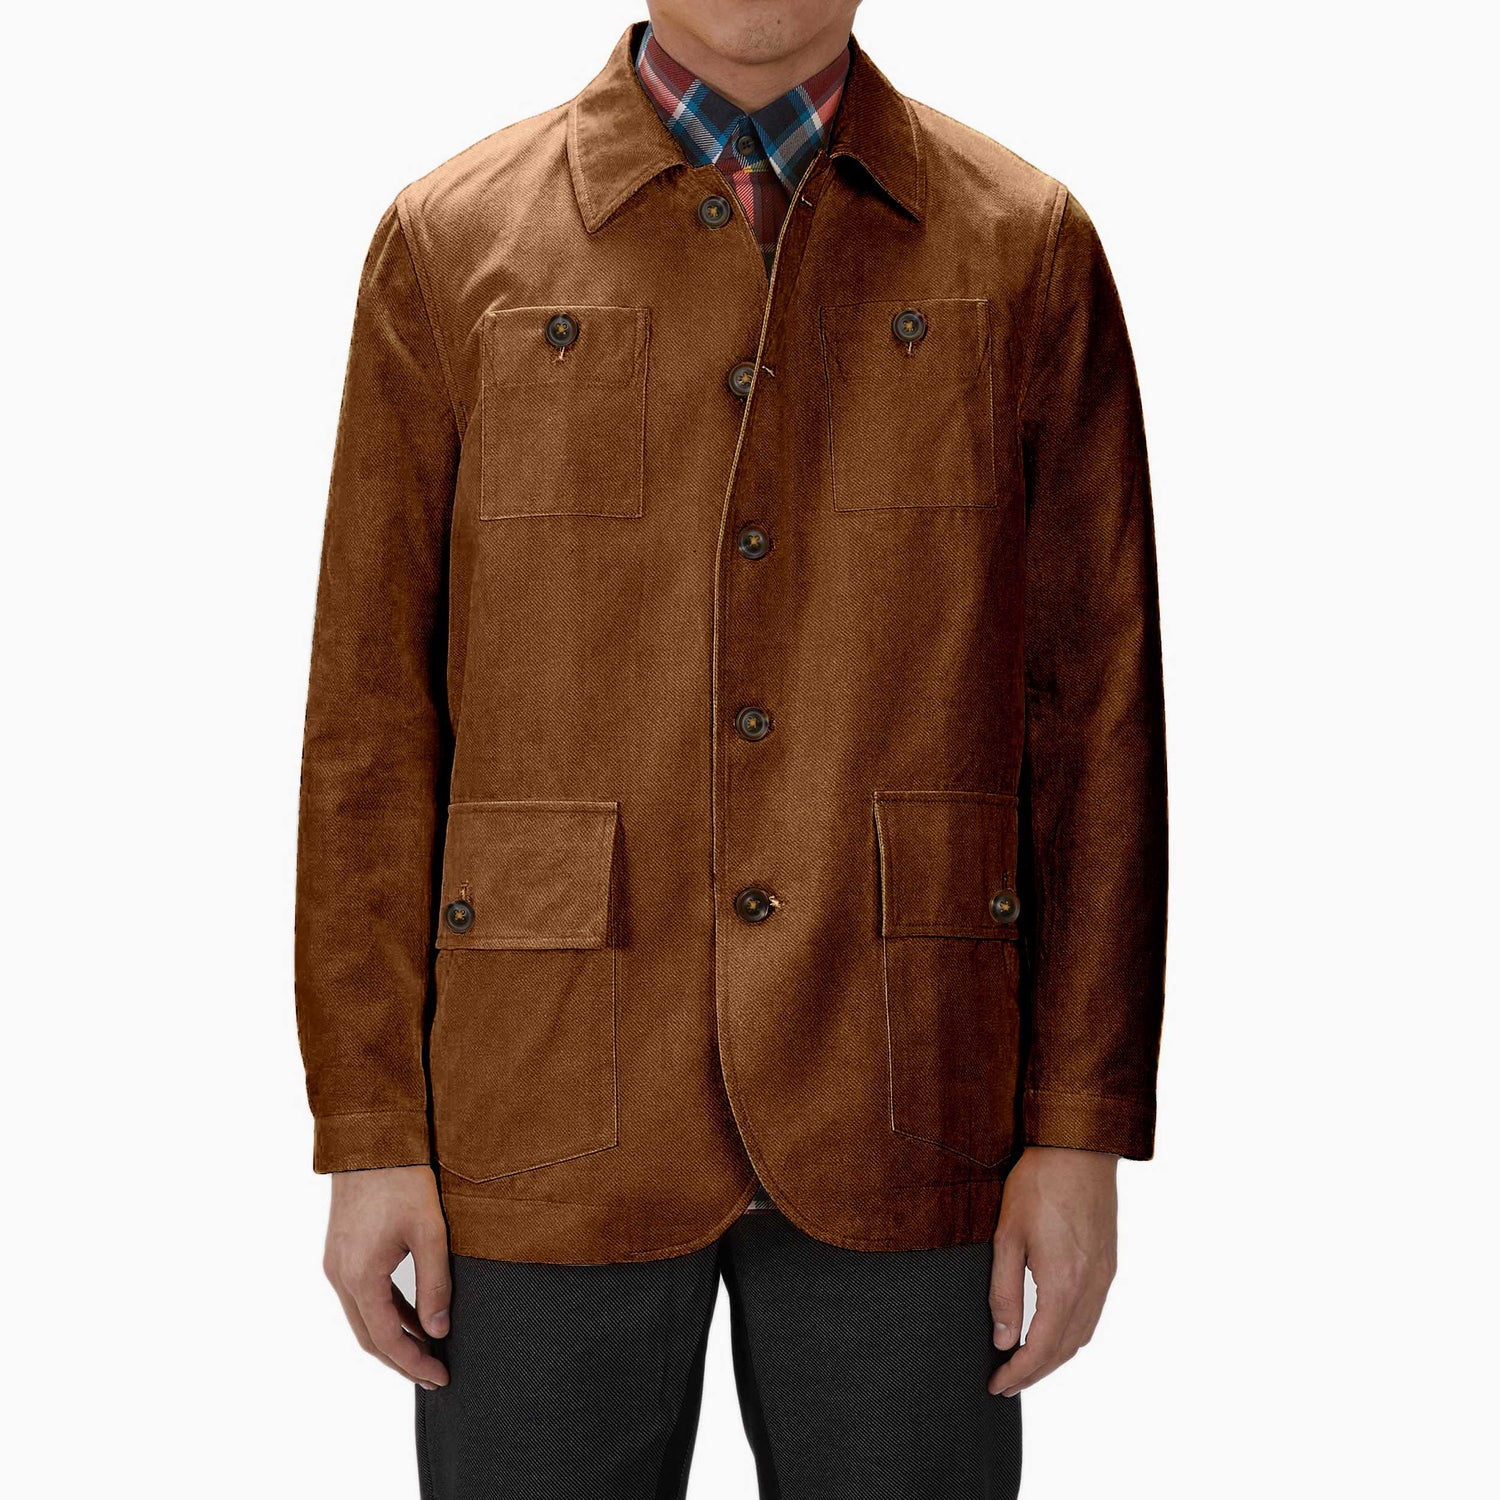 The Leather and Tweed Twill Country Jacket